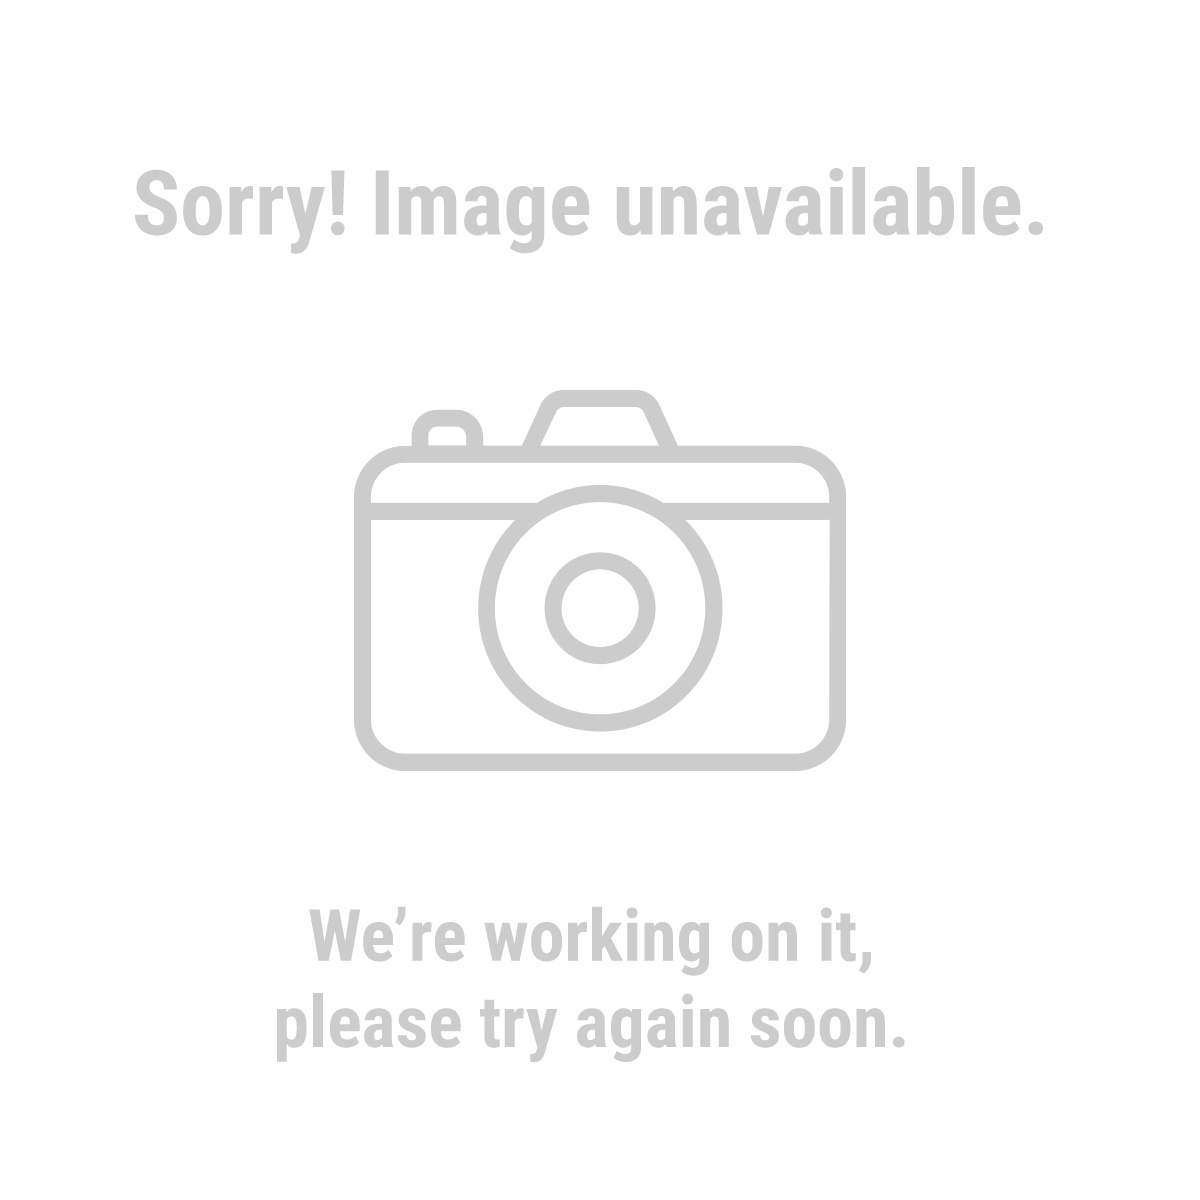 Admiral 62730 12 in. 96T Finishing Circular Saw Blade